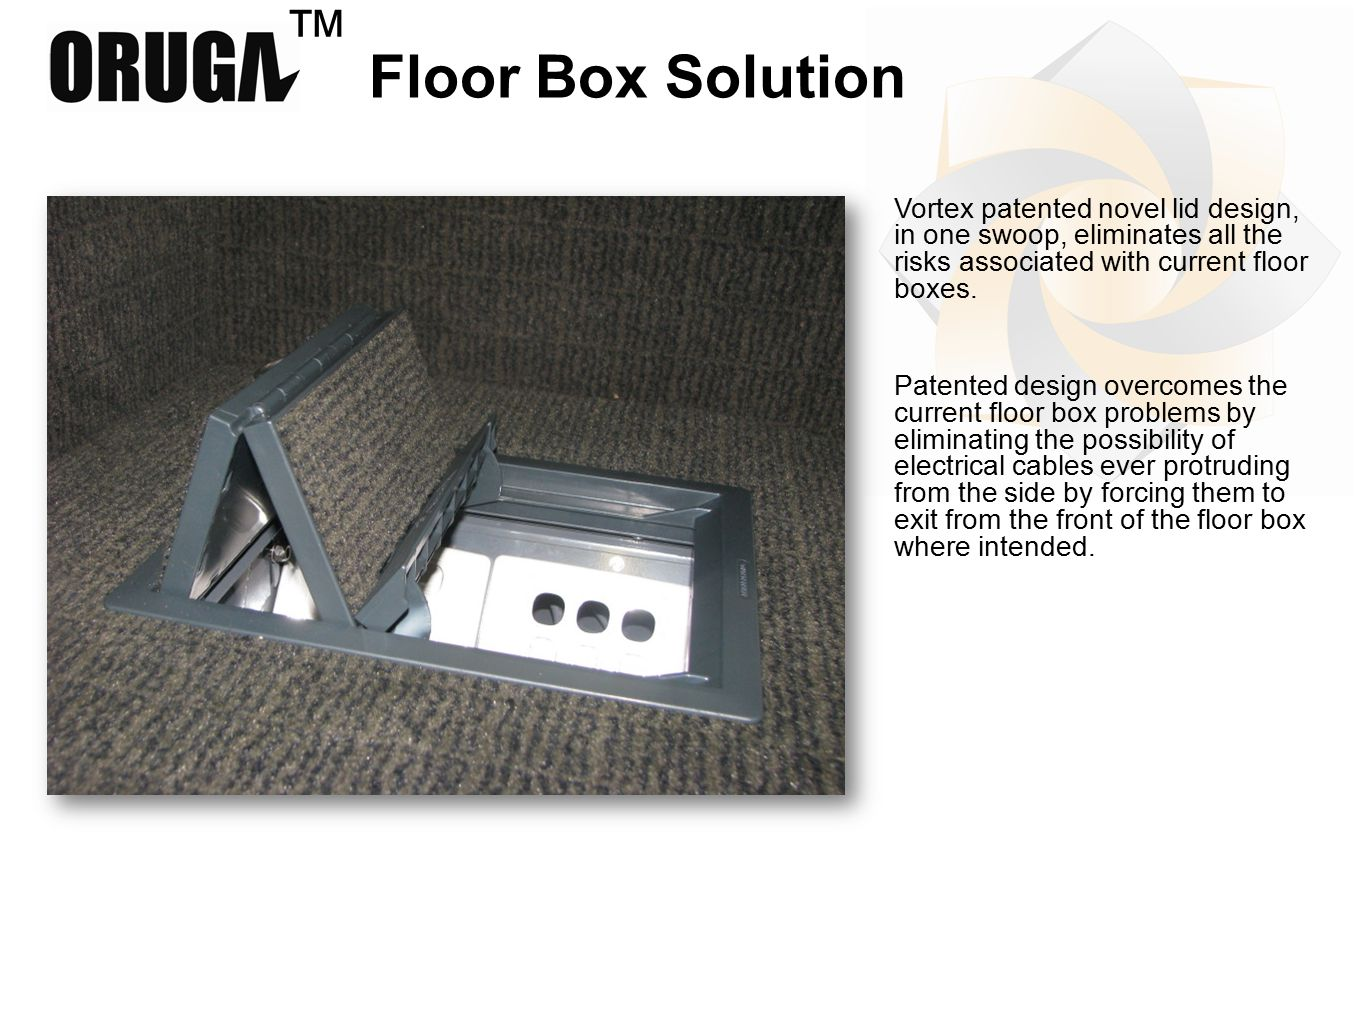 ™ Floor Box Solution Vortex patented novel lid design, in one swoop, eliminates all the risks associated with current floor boxes.